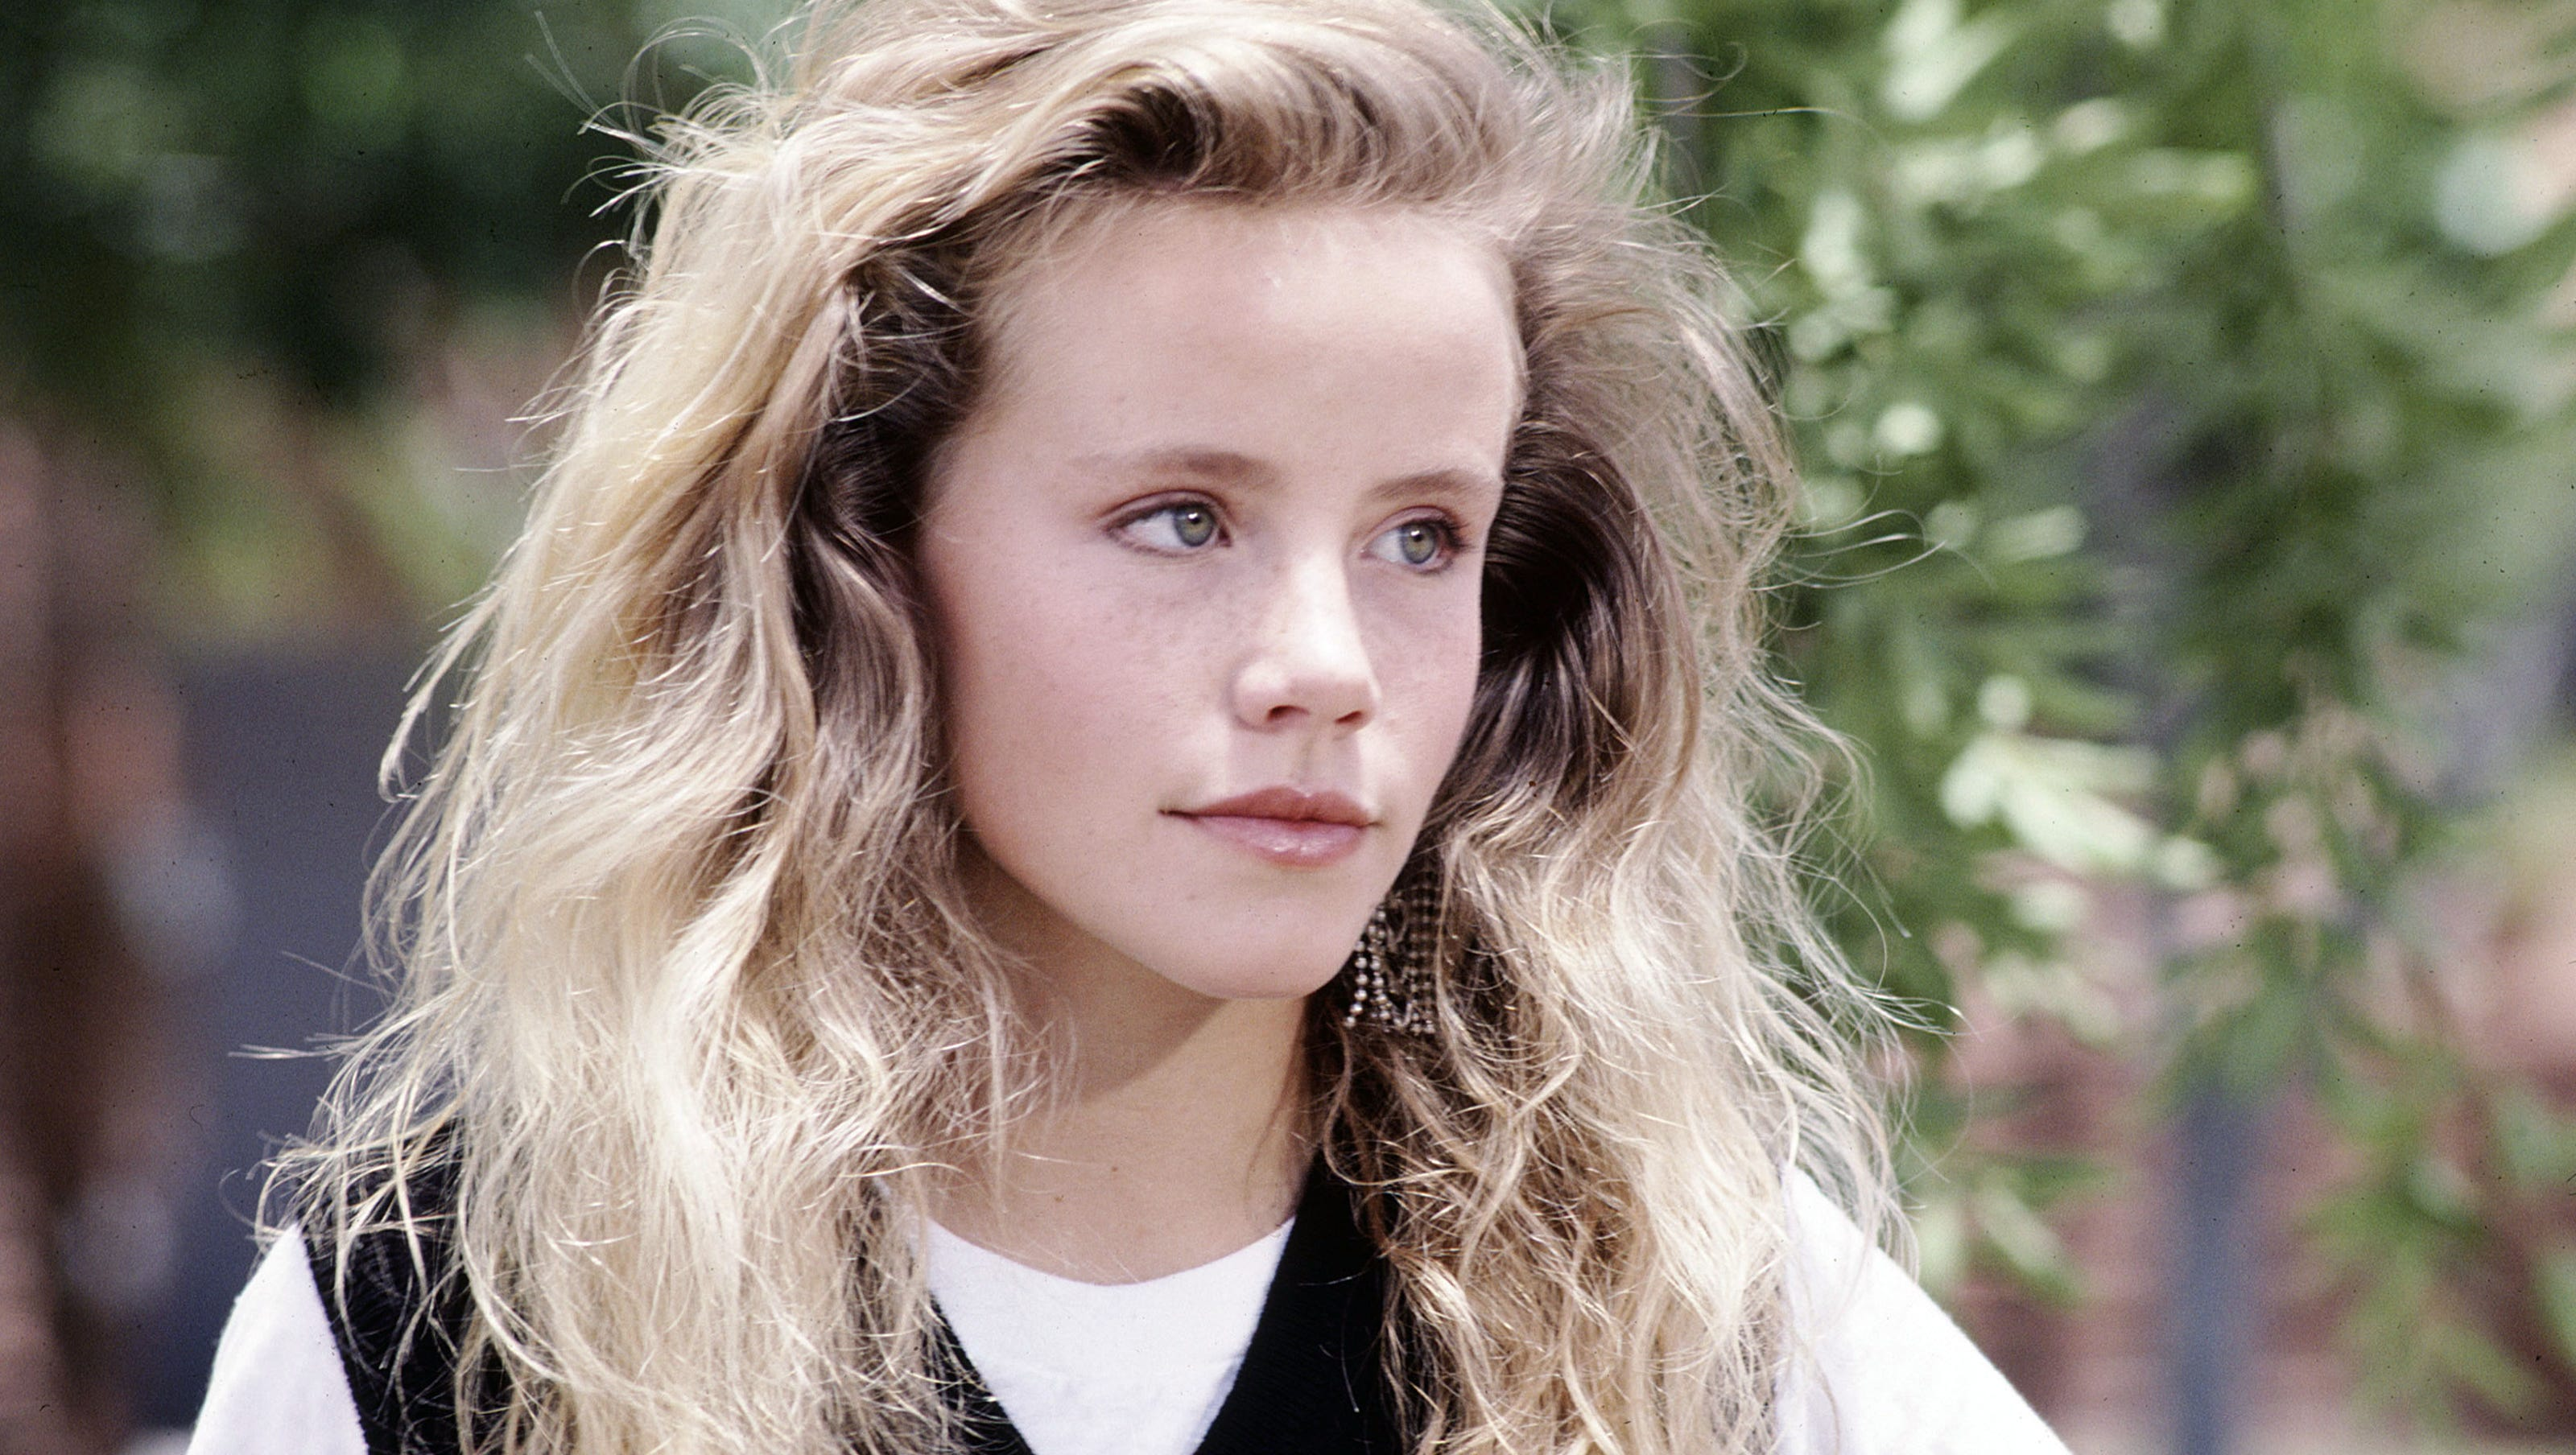 amanda peterson died of accidental morphine overdose